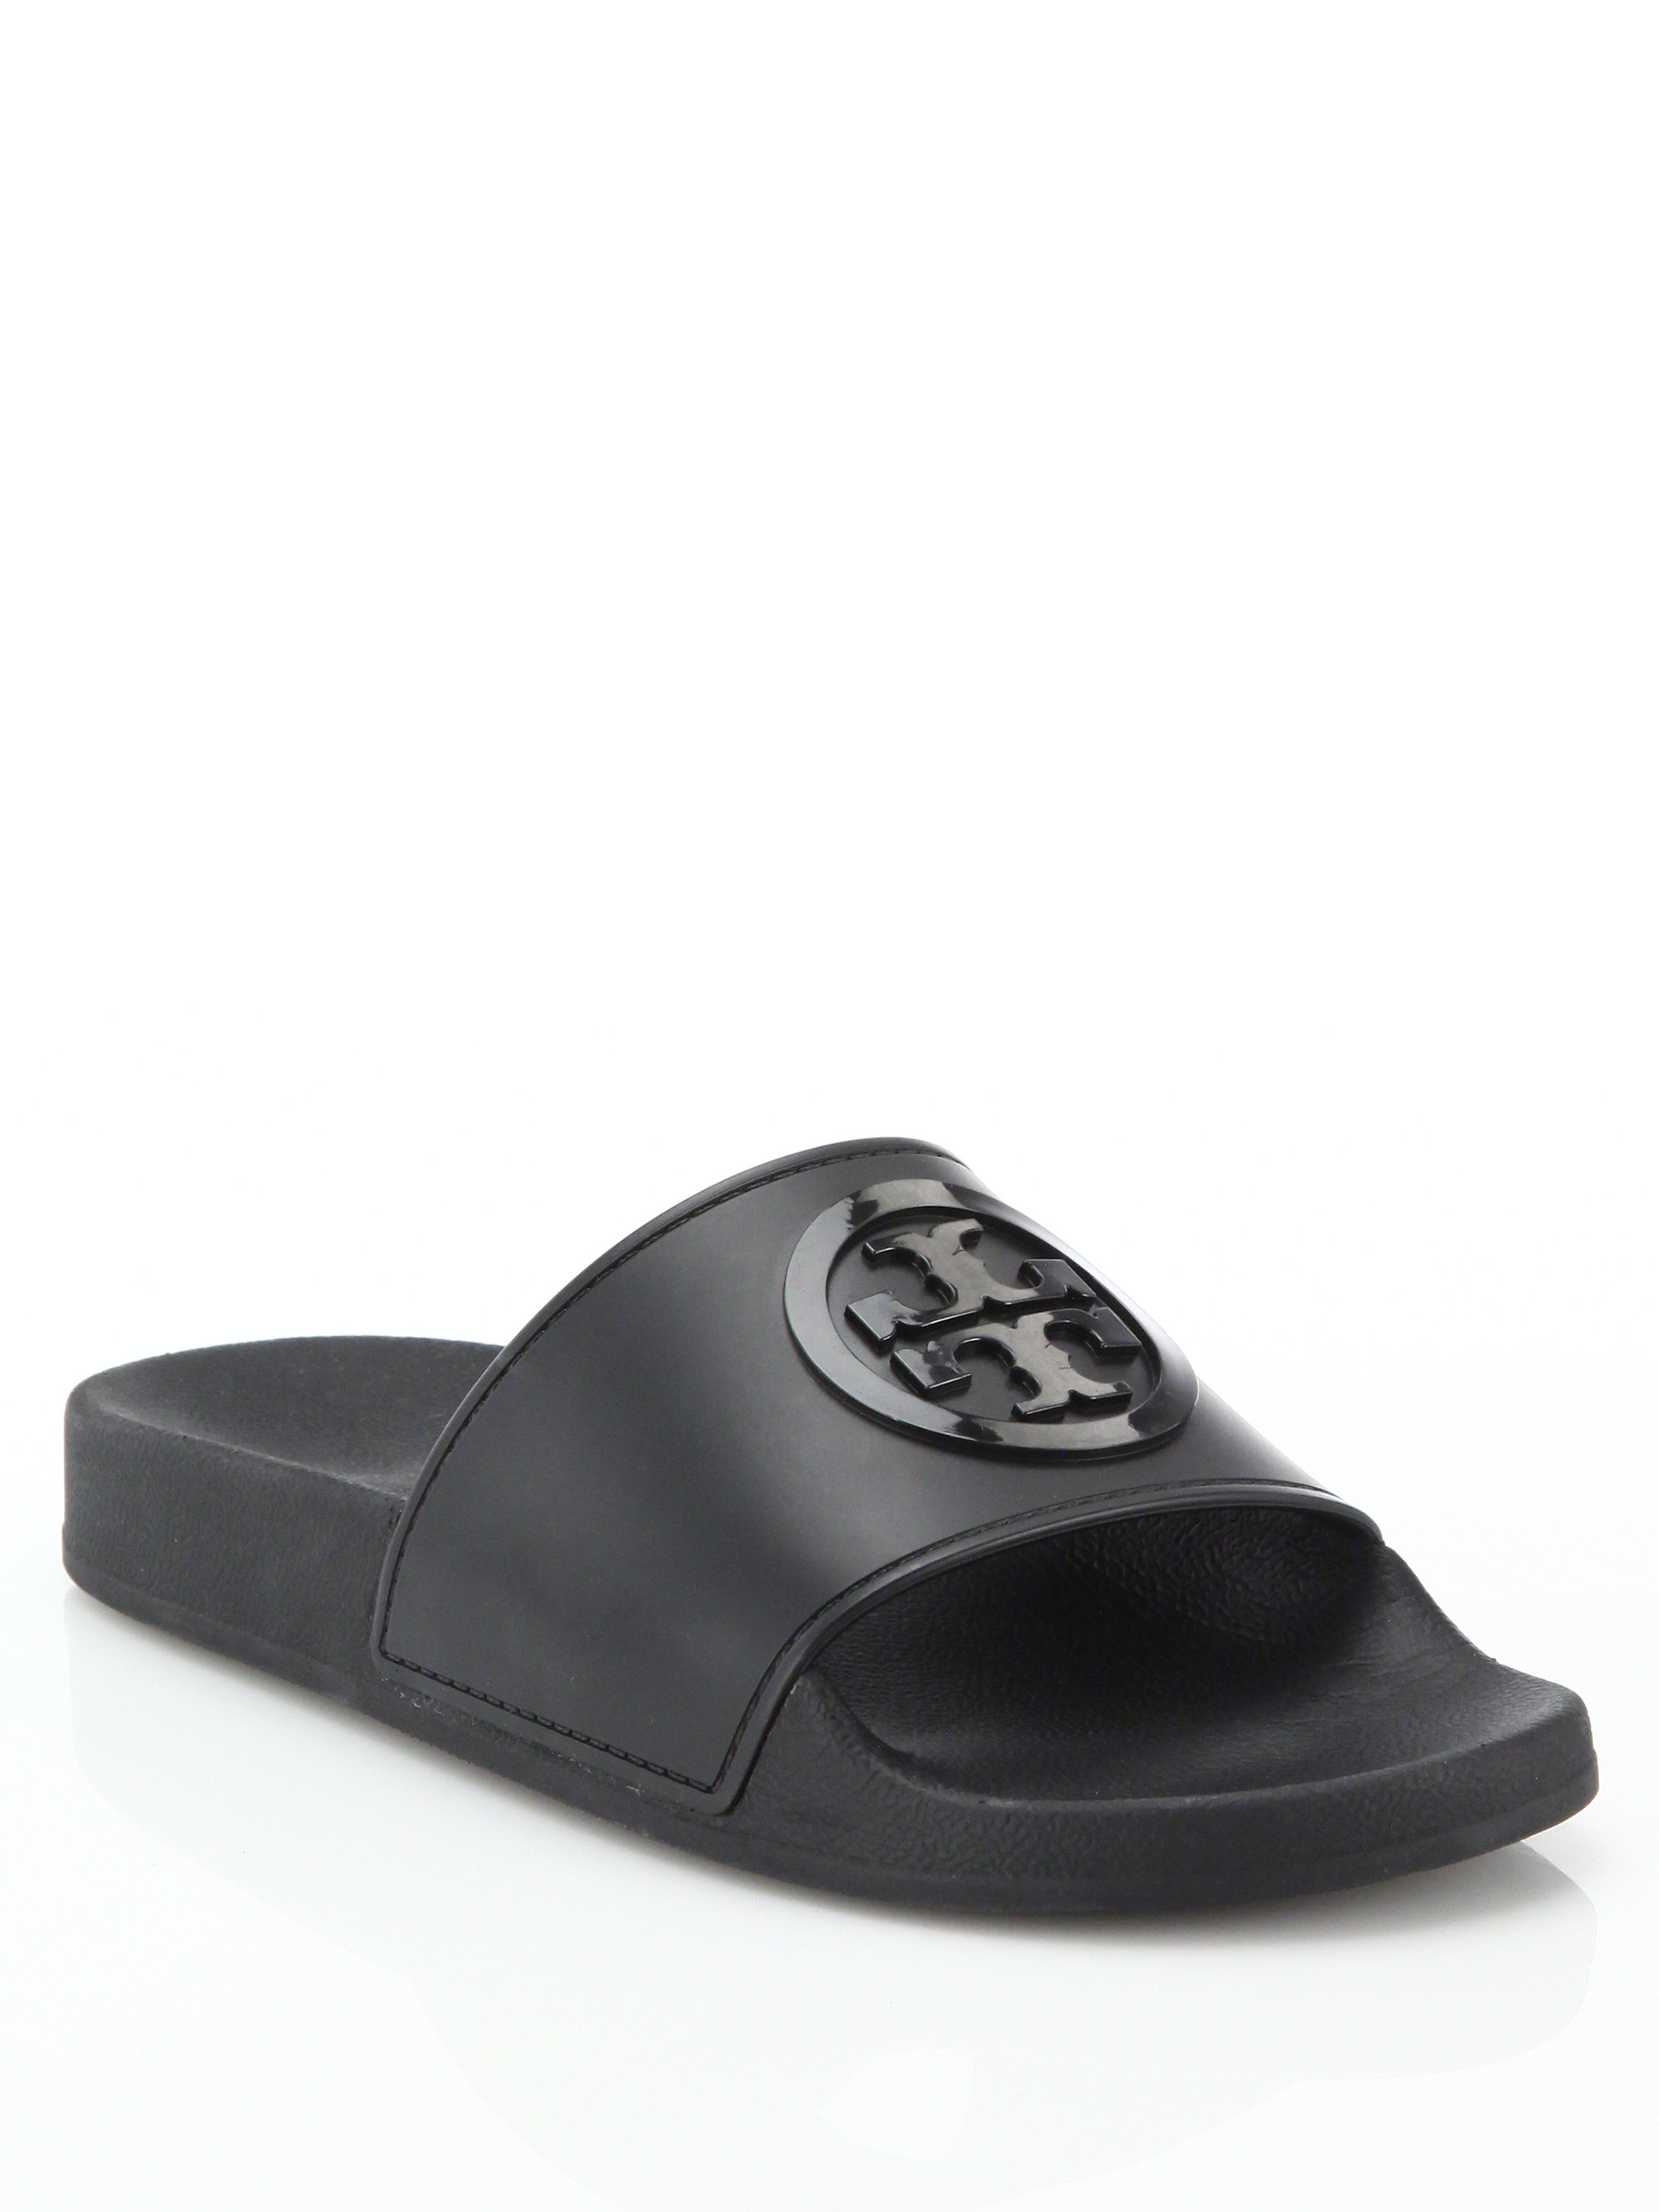 6c7f89346412 Lyst - Tory Burch Jelly Anatomic Flat Slides in Black